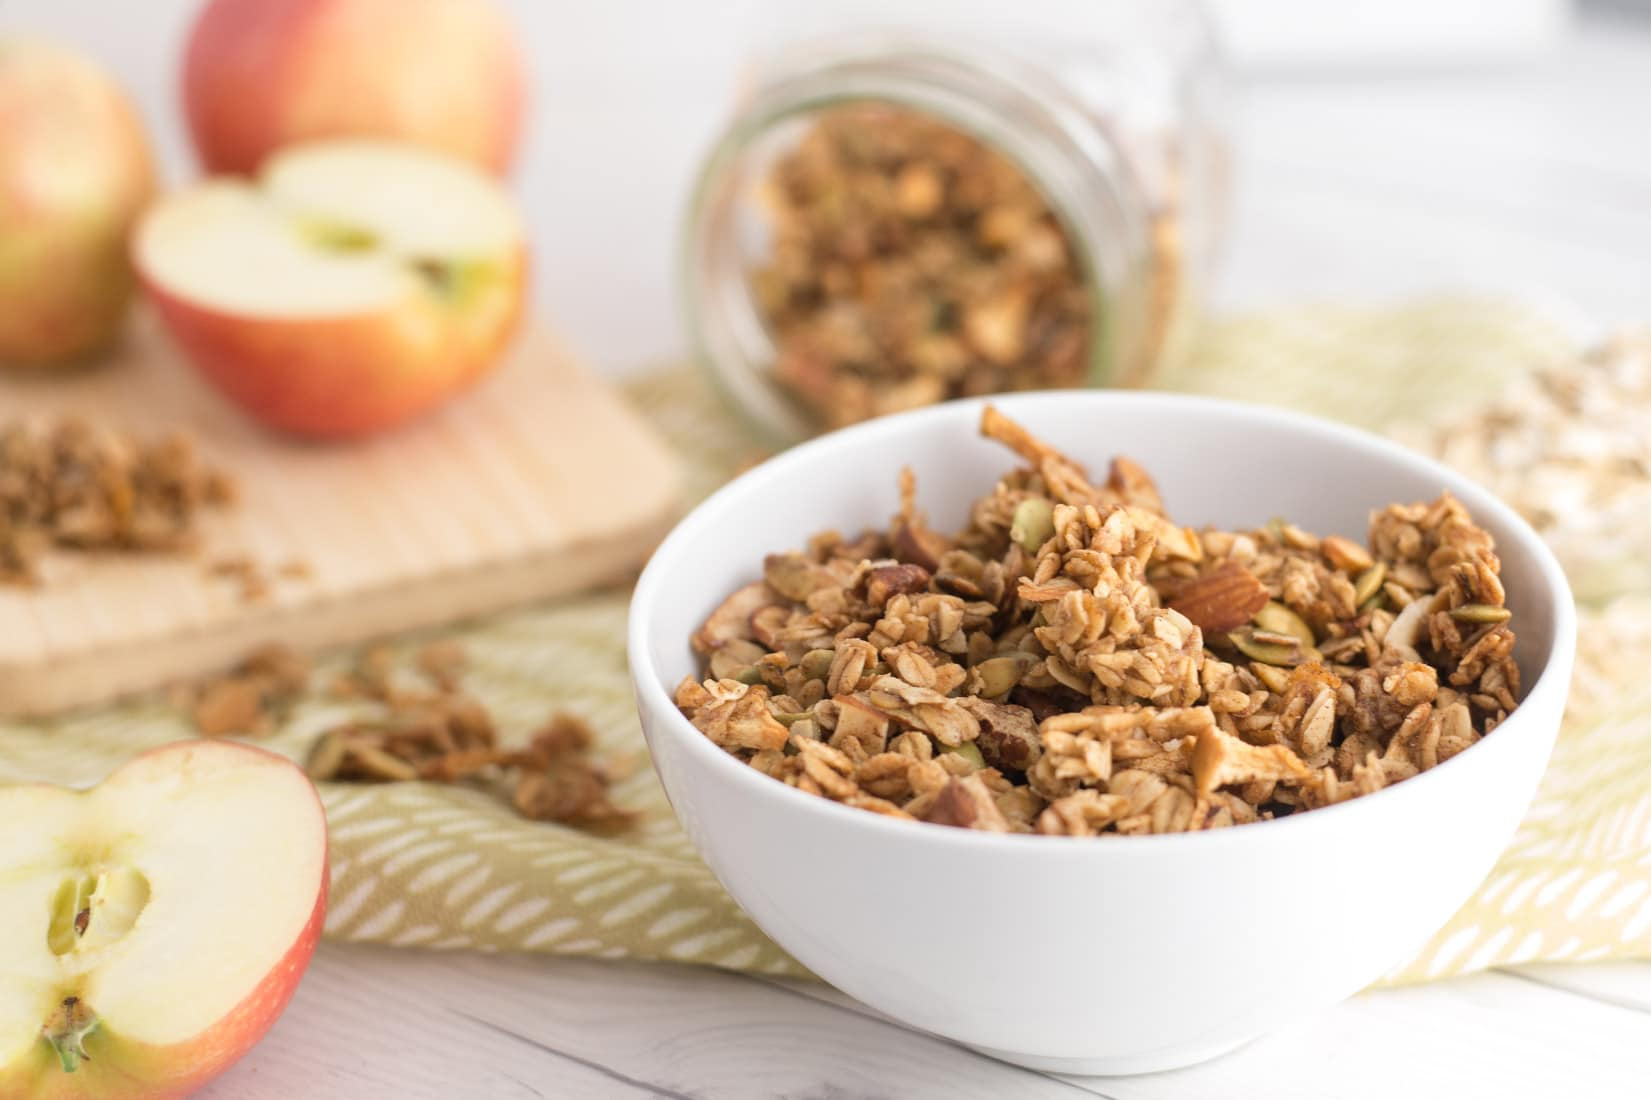 Chunky Apple Spice Granola -- Are you ready for Fall? This apple spice granola recipe is perfect for those chillier months. Made with REAL apples, maple syrup, and clusters of oats, this healthy homemade granola is delicious and is made with natural ingredients. Add this vegan and gluten free granola to your breakfast or snack. | mindfulavocado